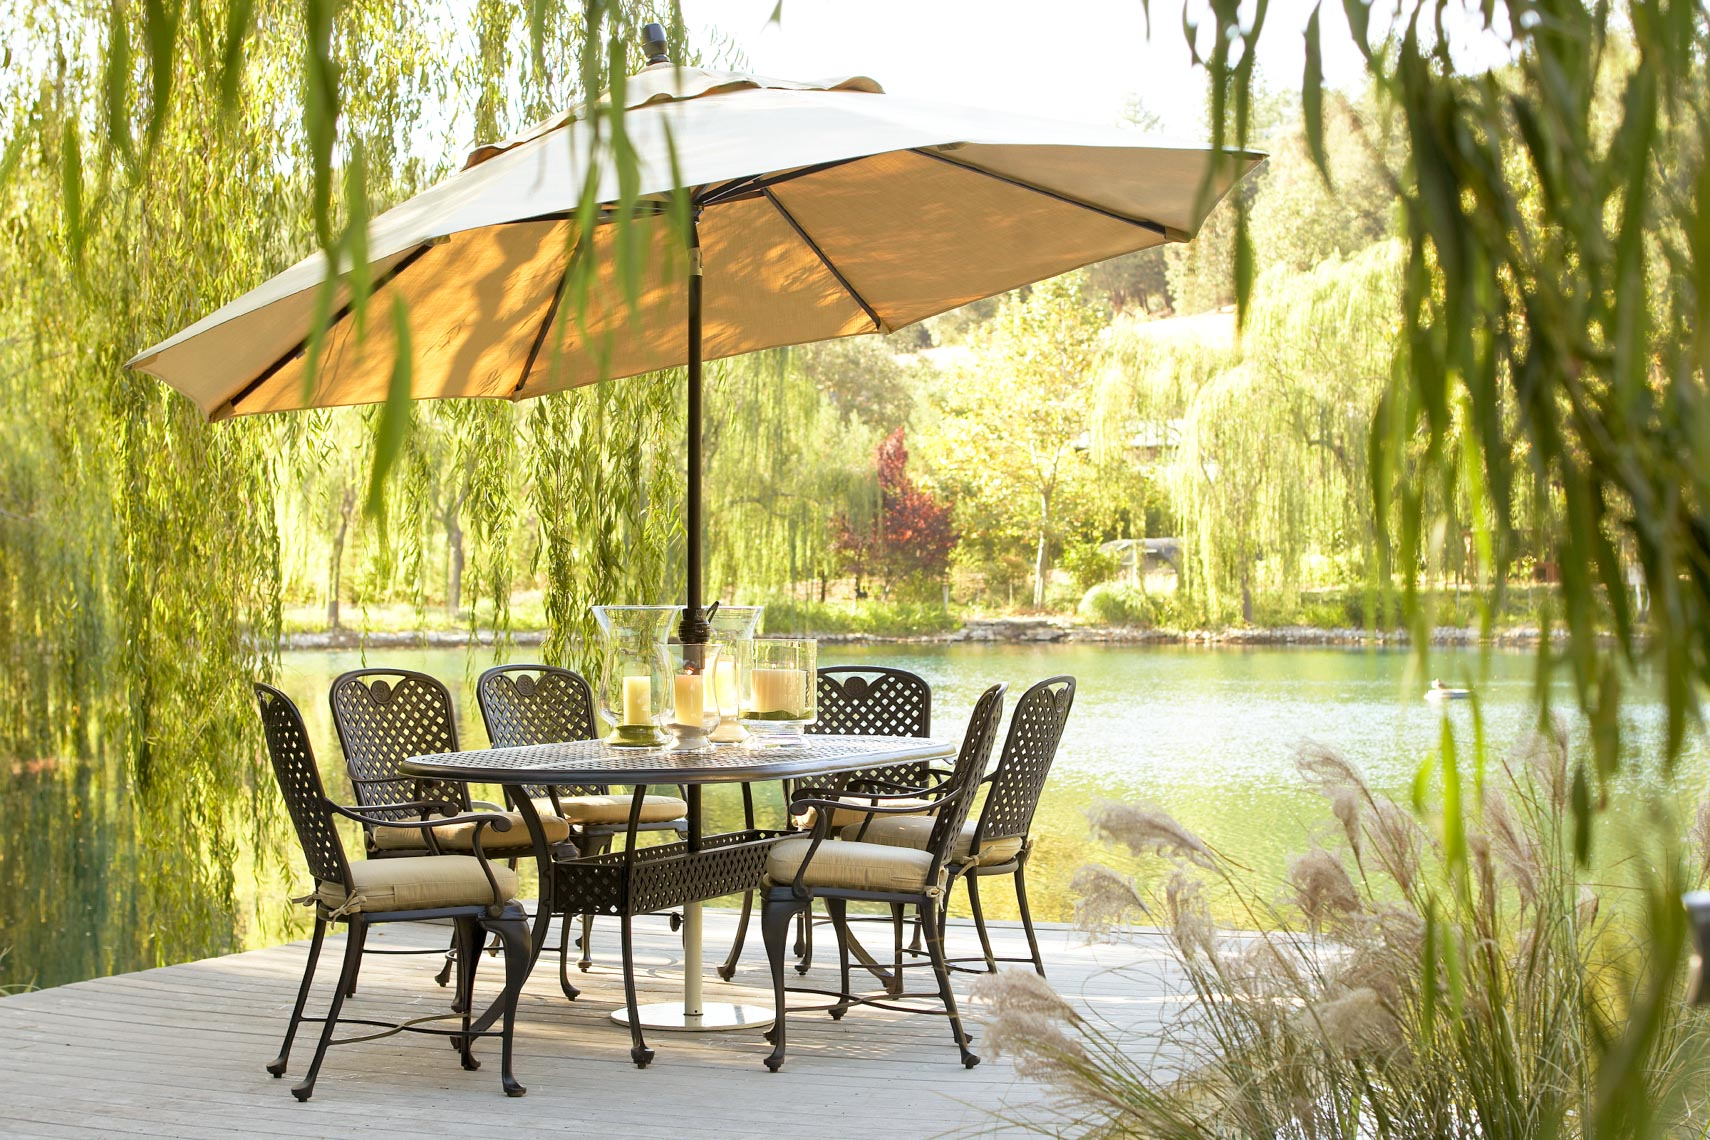 Metal furniture and table with umbrella on dock by water